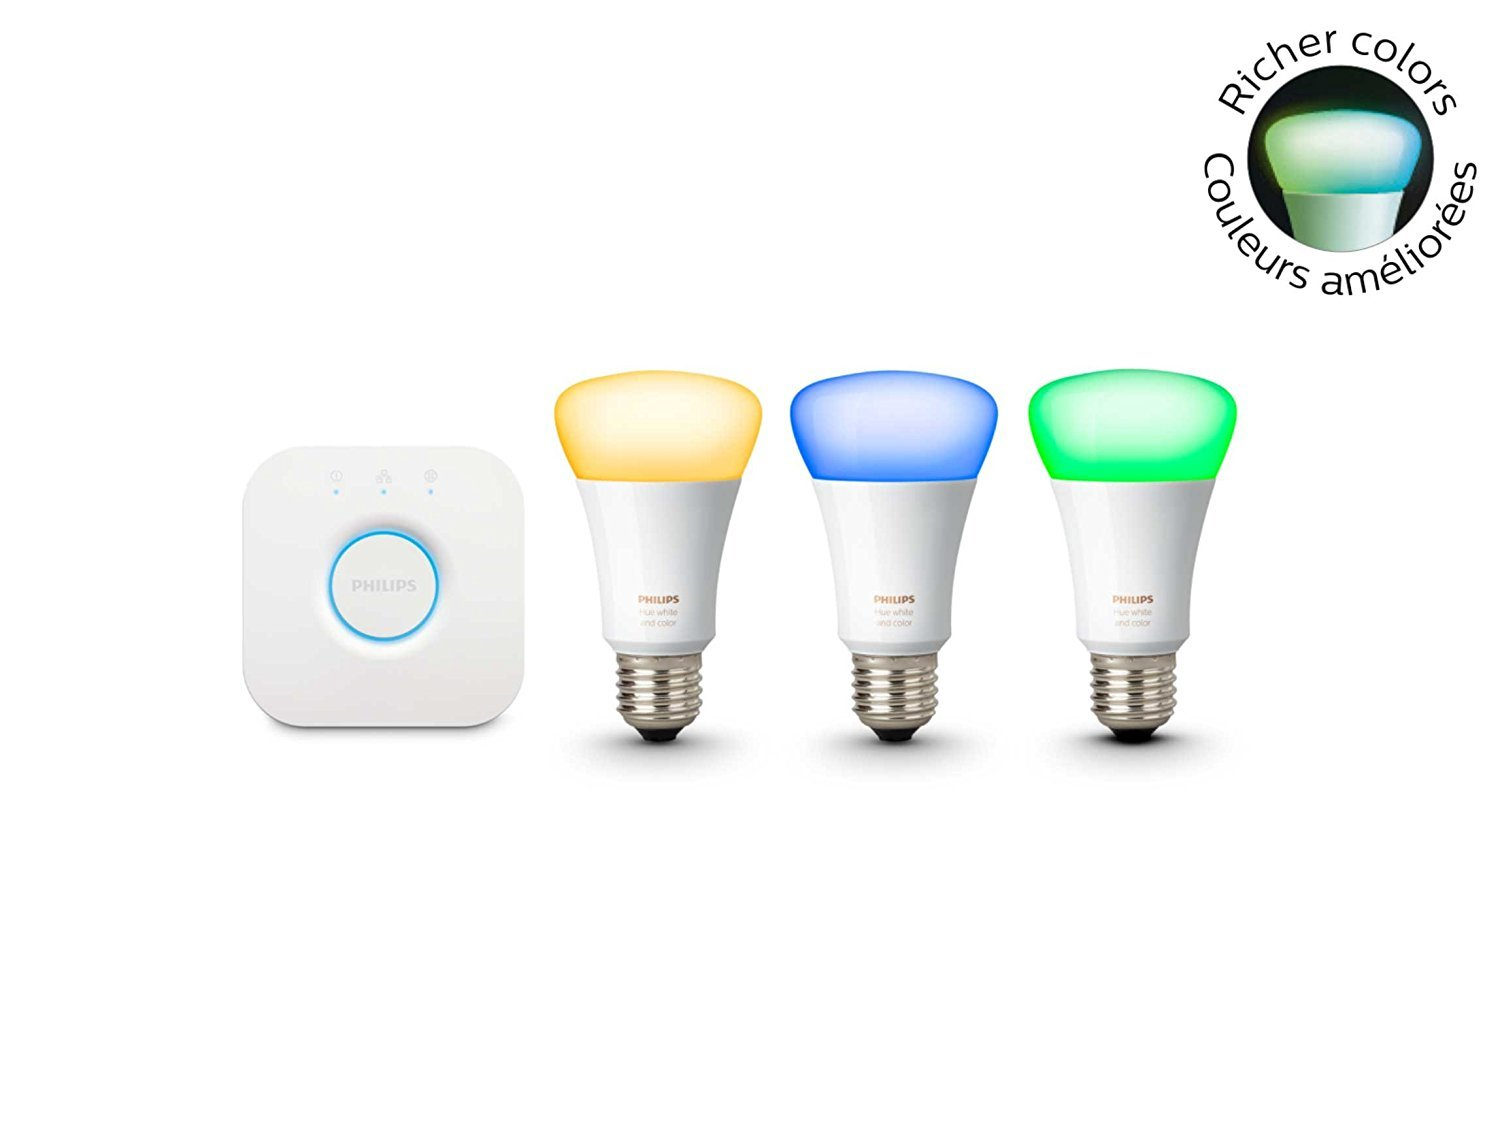 Philips Hue 464479 White and Color Ambiance A19 Starter Kit, 3rd Generation with Richer Colors, Works with Amazon Alexa (Certified Refurbished) by Philips (Image #3)